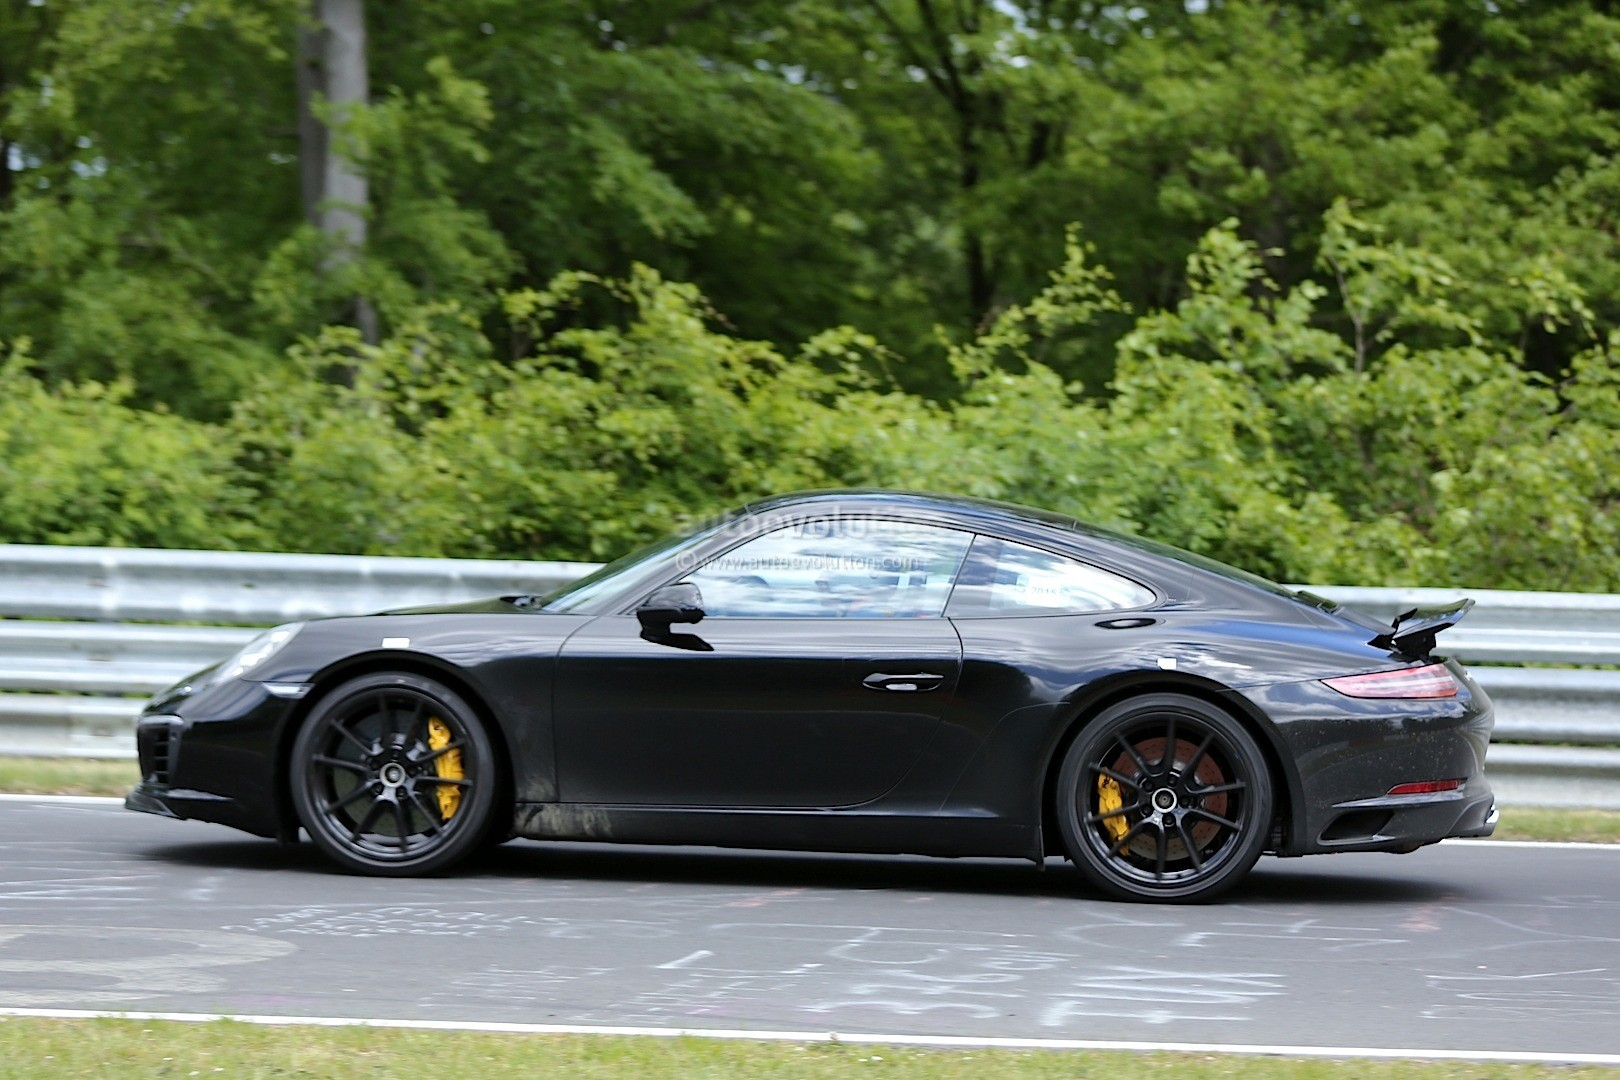 New Porsche 911 Facelift Spied On The Nurburgring And In HD Style Wallpapers Download free beautiful images and photos HD [prarshipsa.tk]